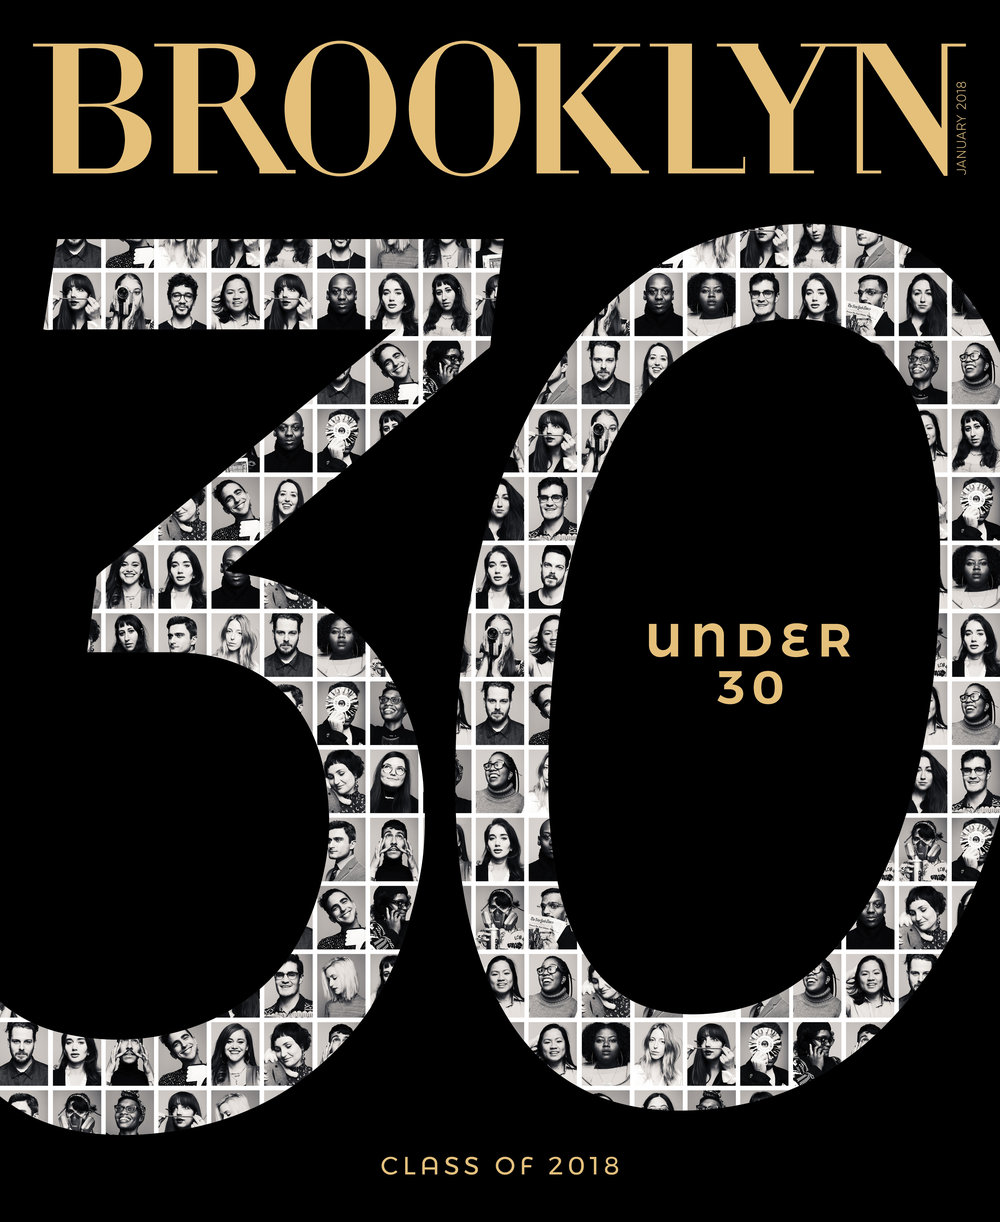 Brooklyn Magazine - 30 under 30, class of 2018.